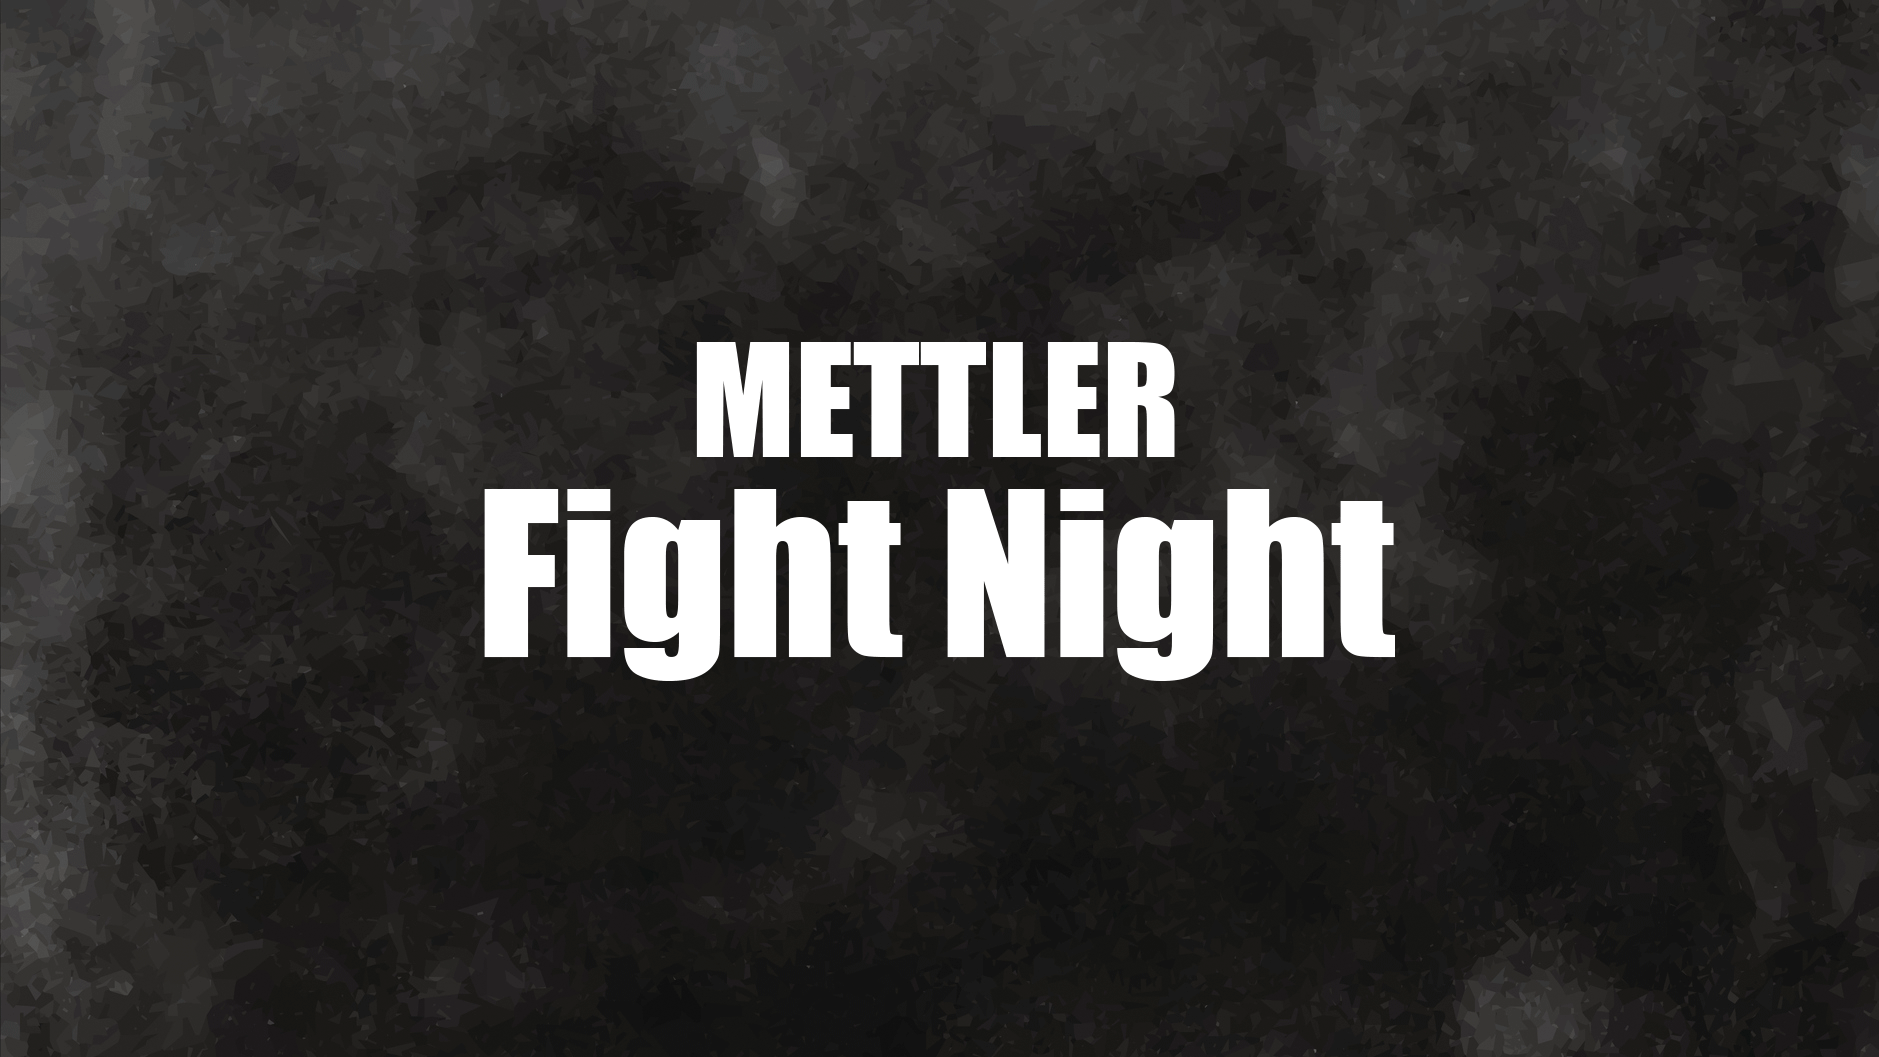 Mettler Fight Night